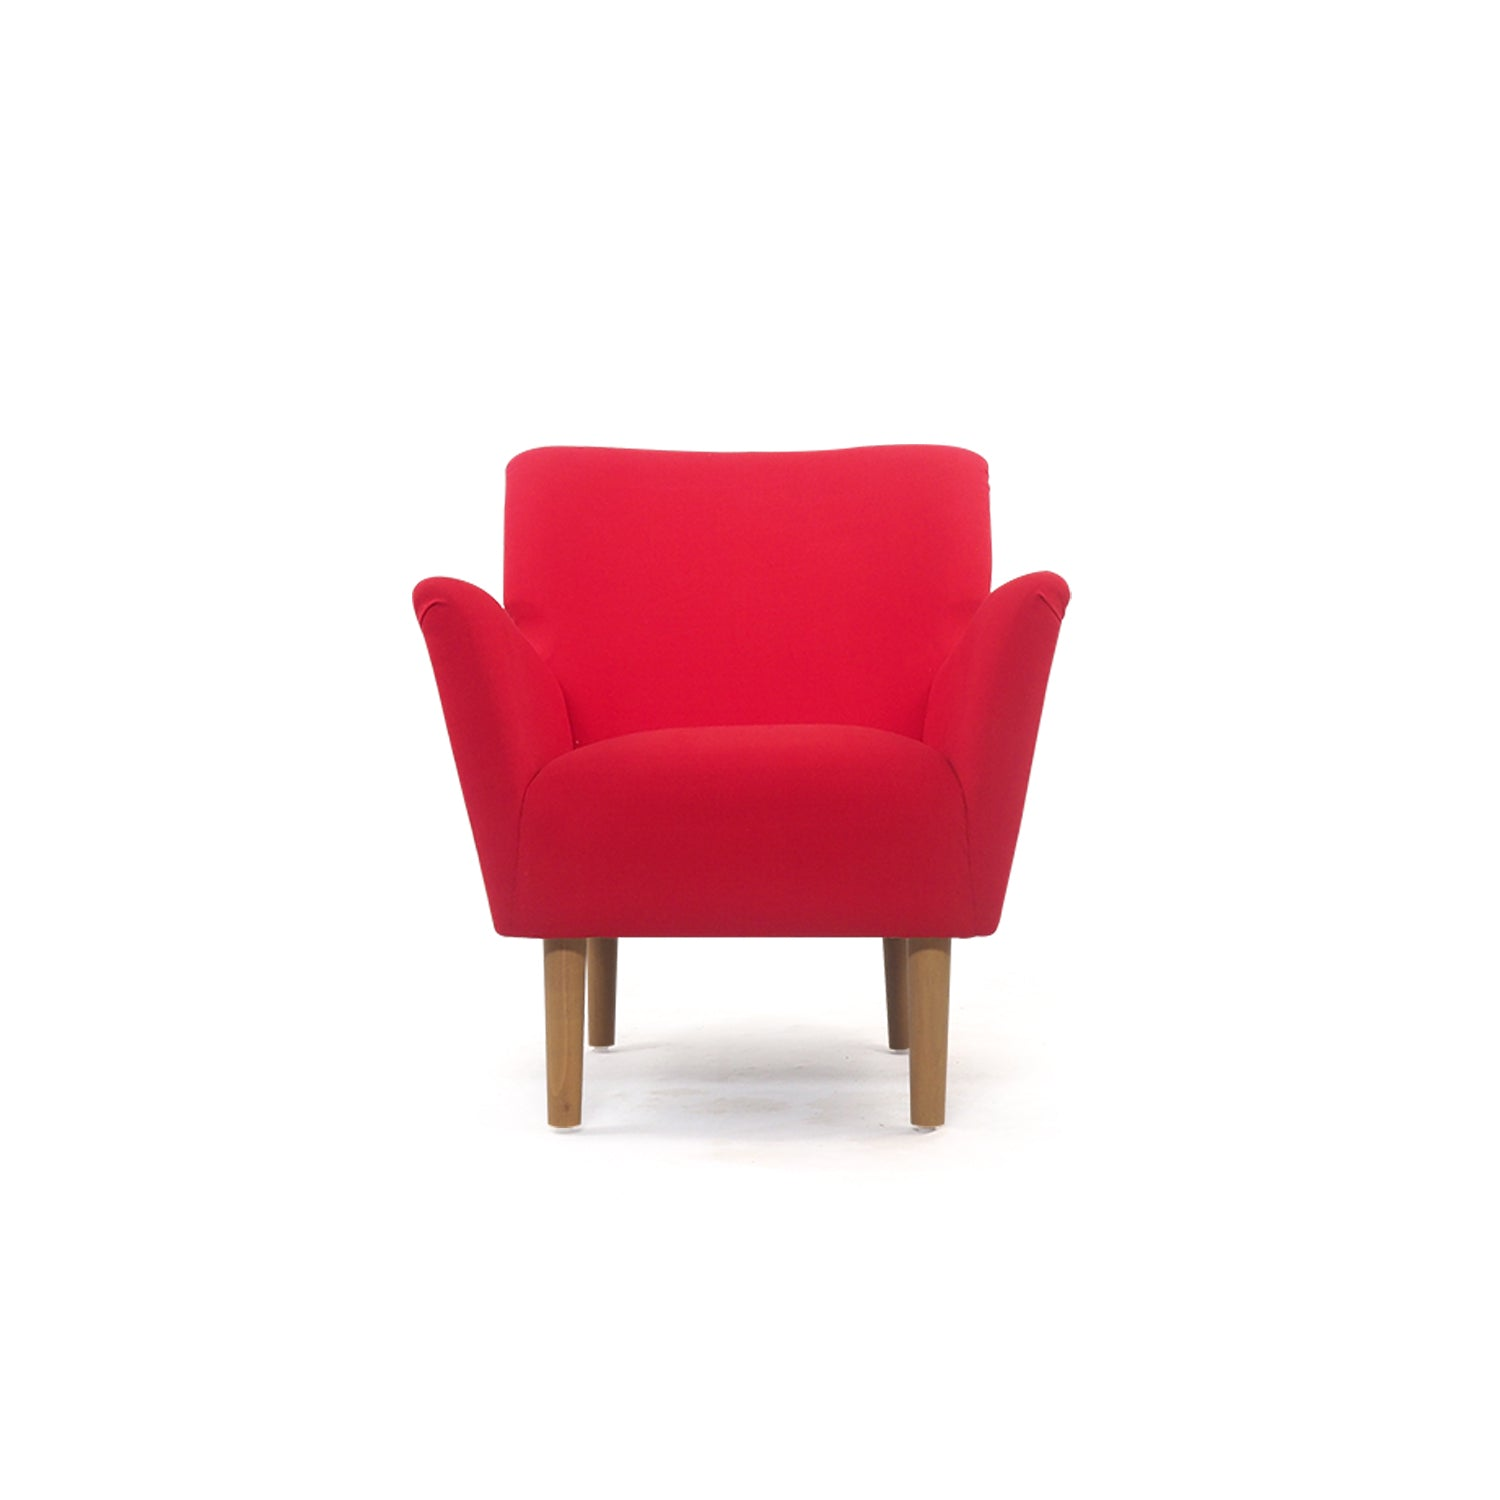 Armchair Red Polkadot